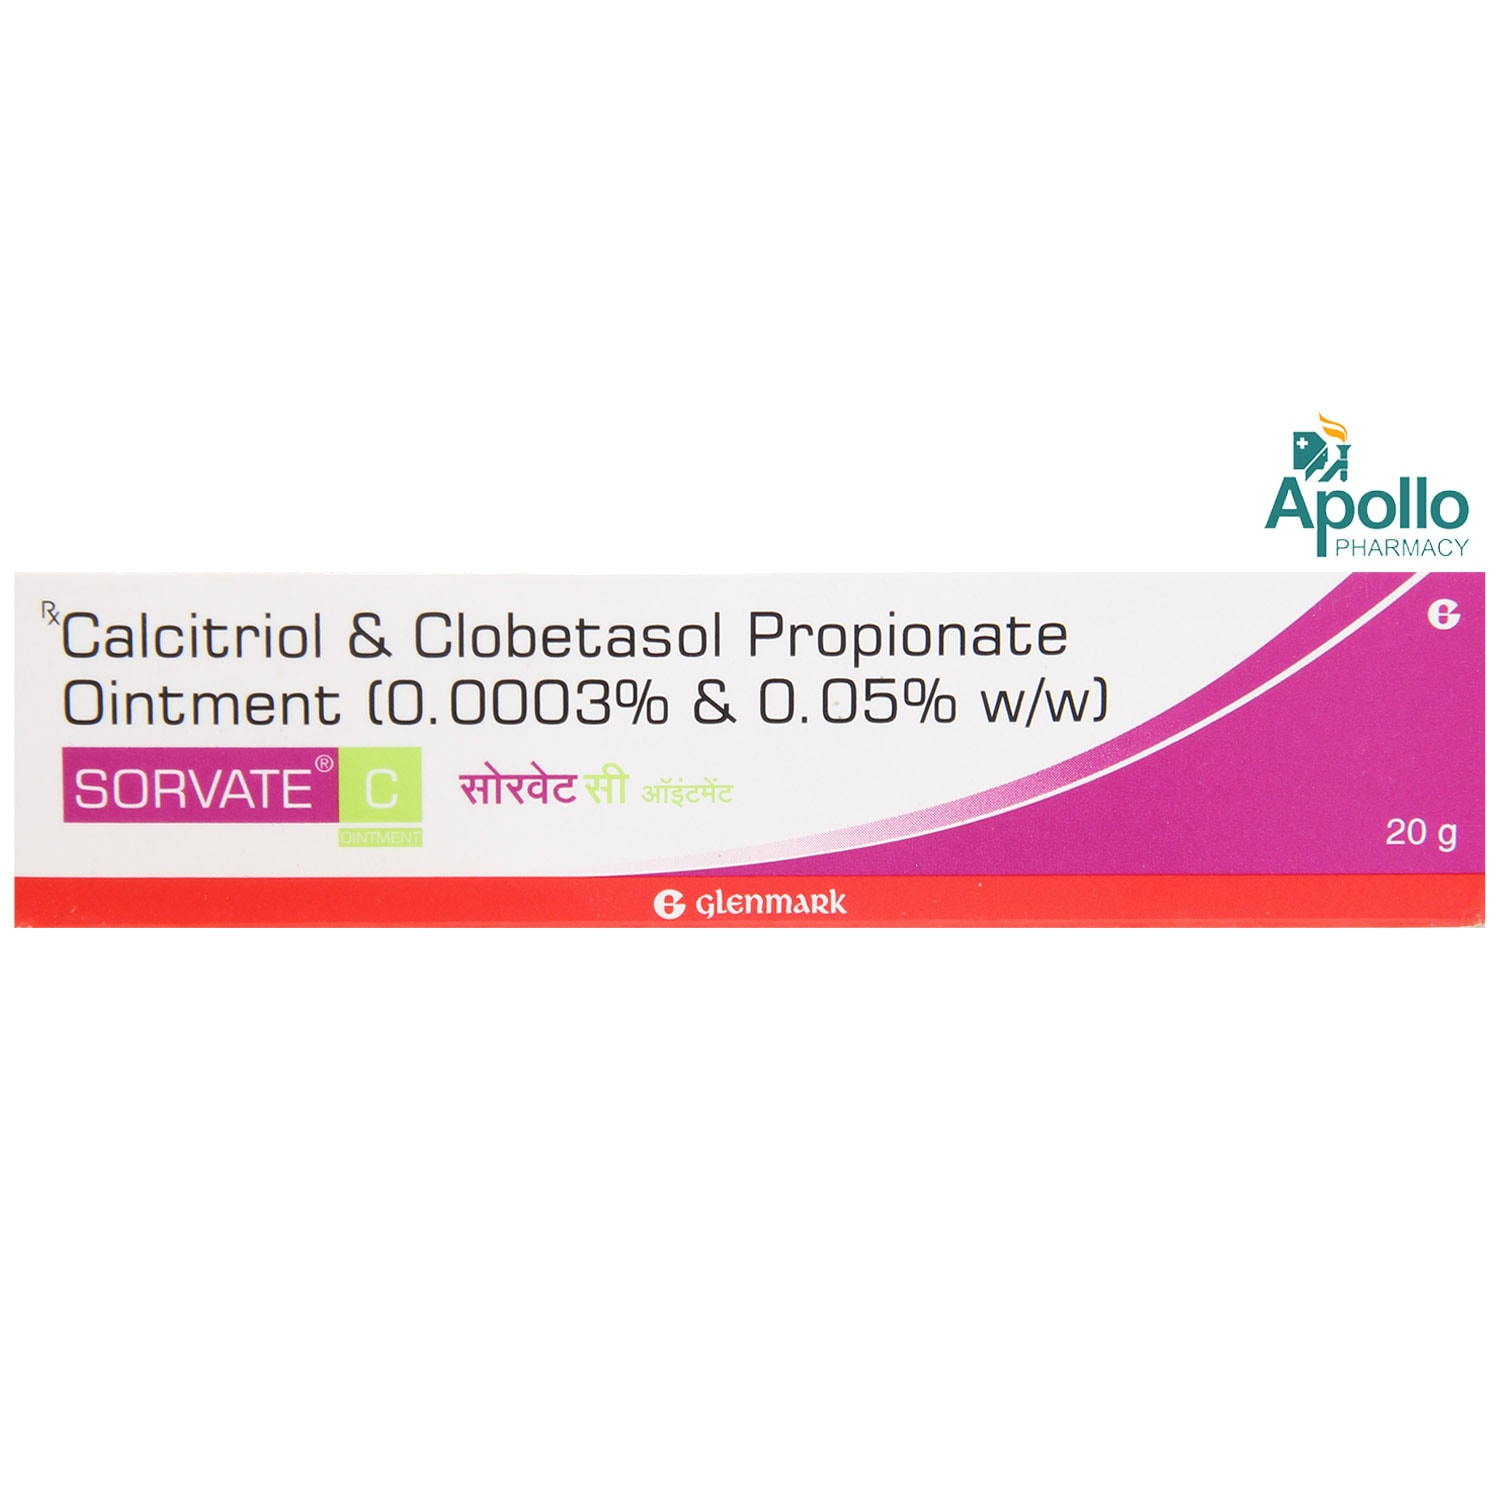 SORVATE C OINTMENT 20G